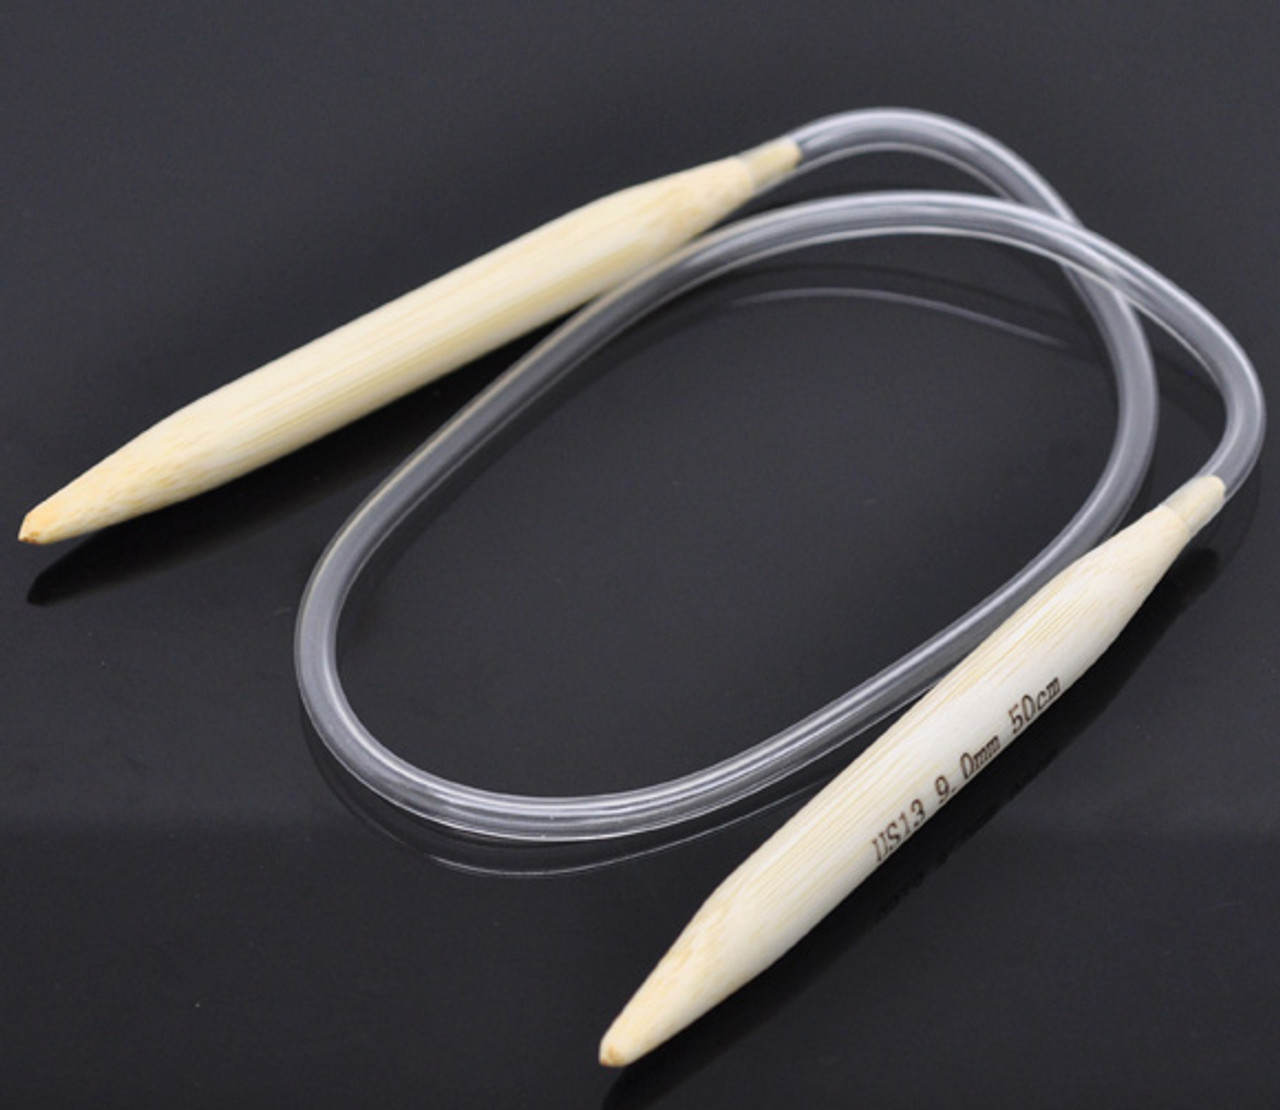 Large Circular Knitting Needles Uk : Pair cm circular knitting needle size mm atomic